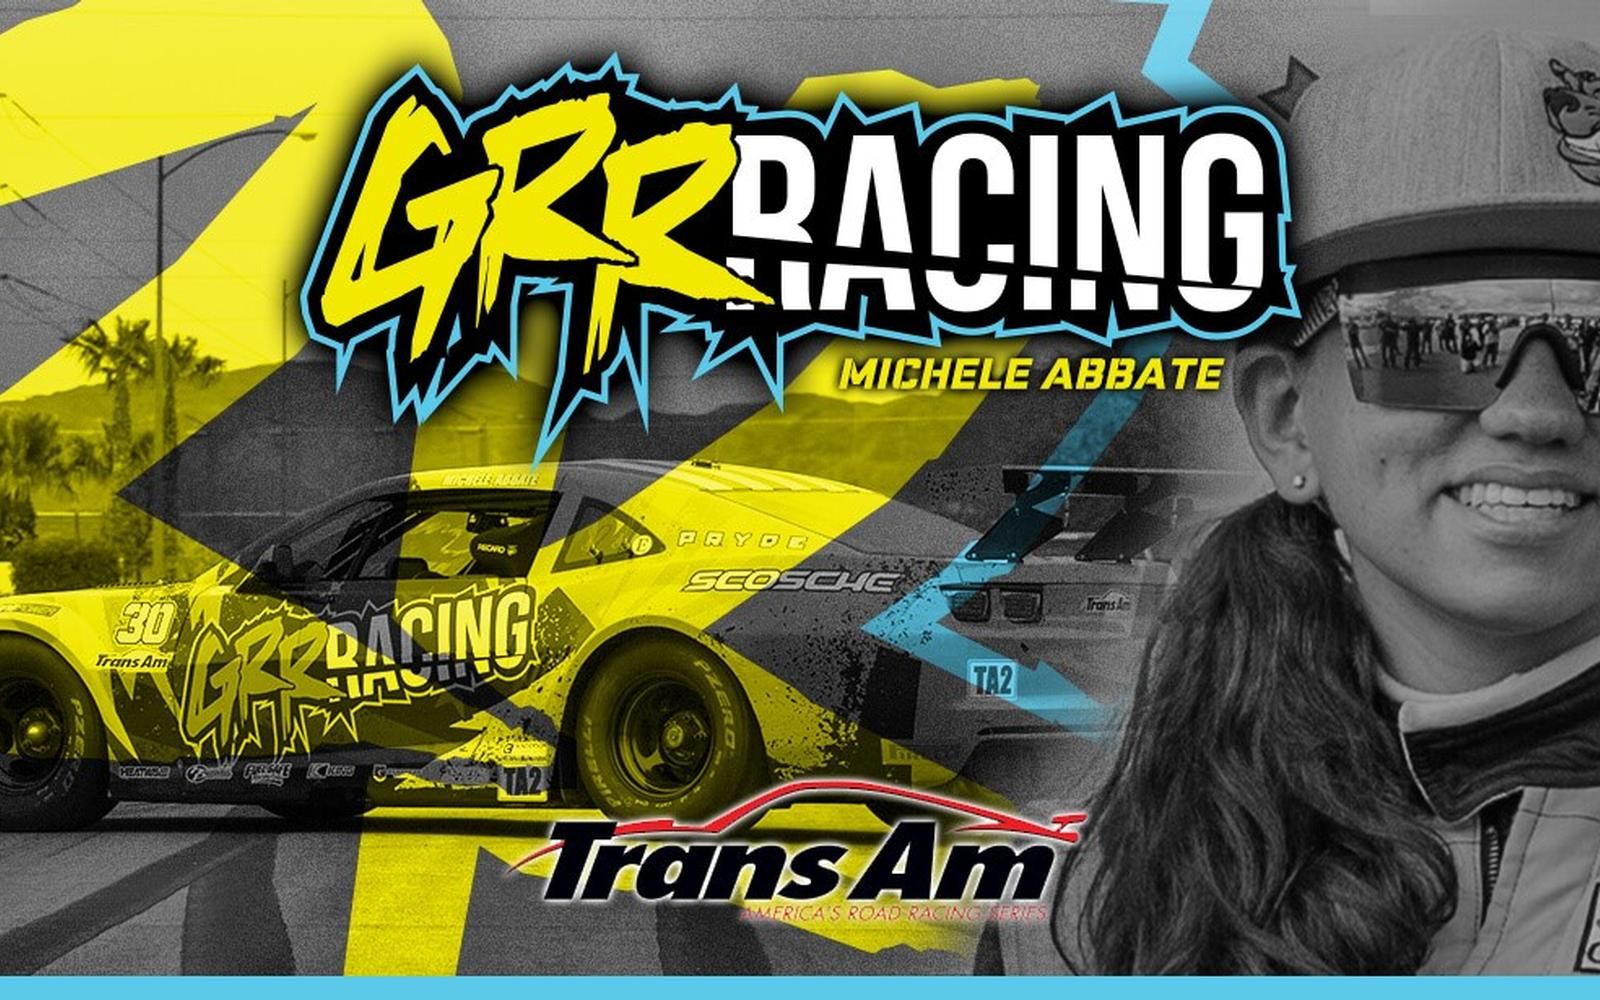 Grr Racing Heads to Auto Club Speedway for Round 2 with Trans Am